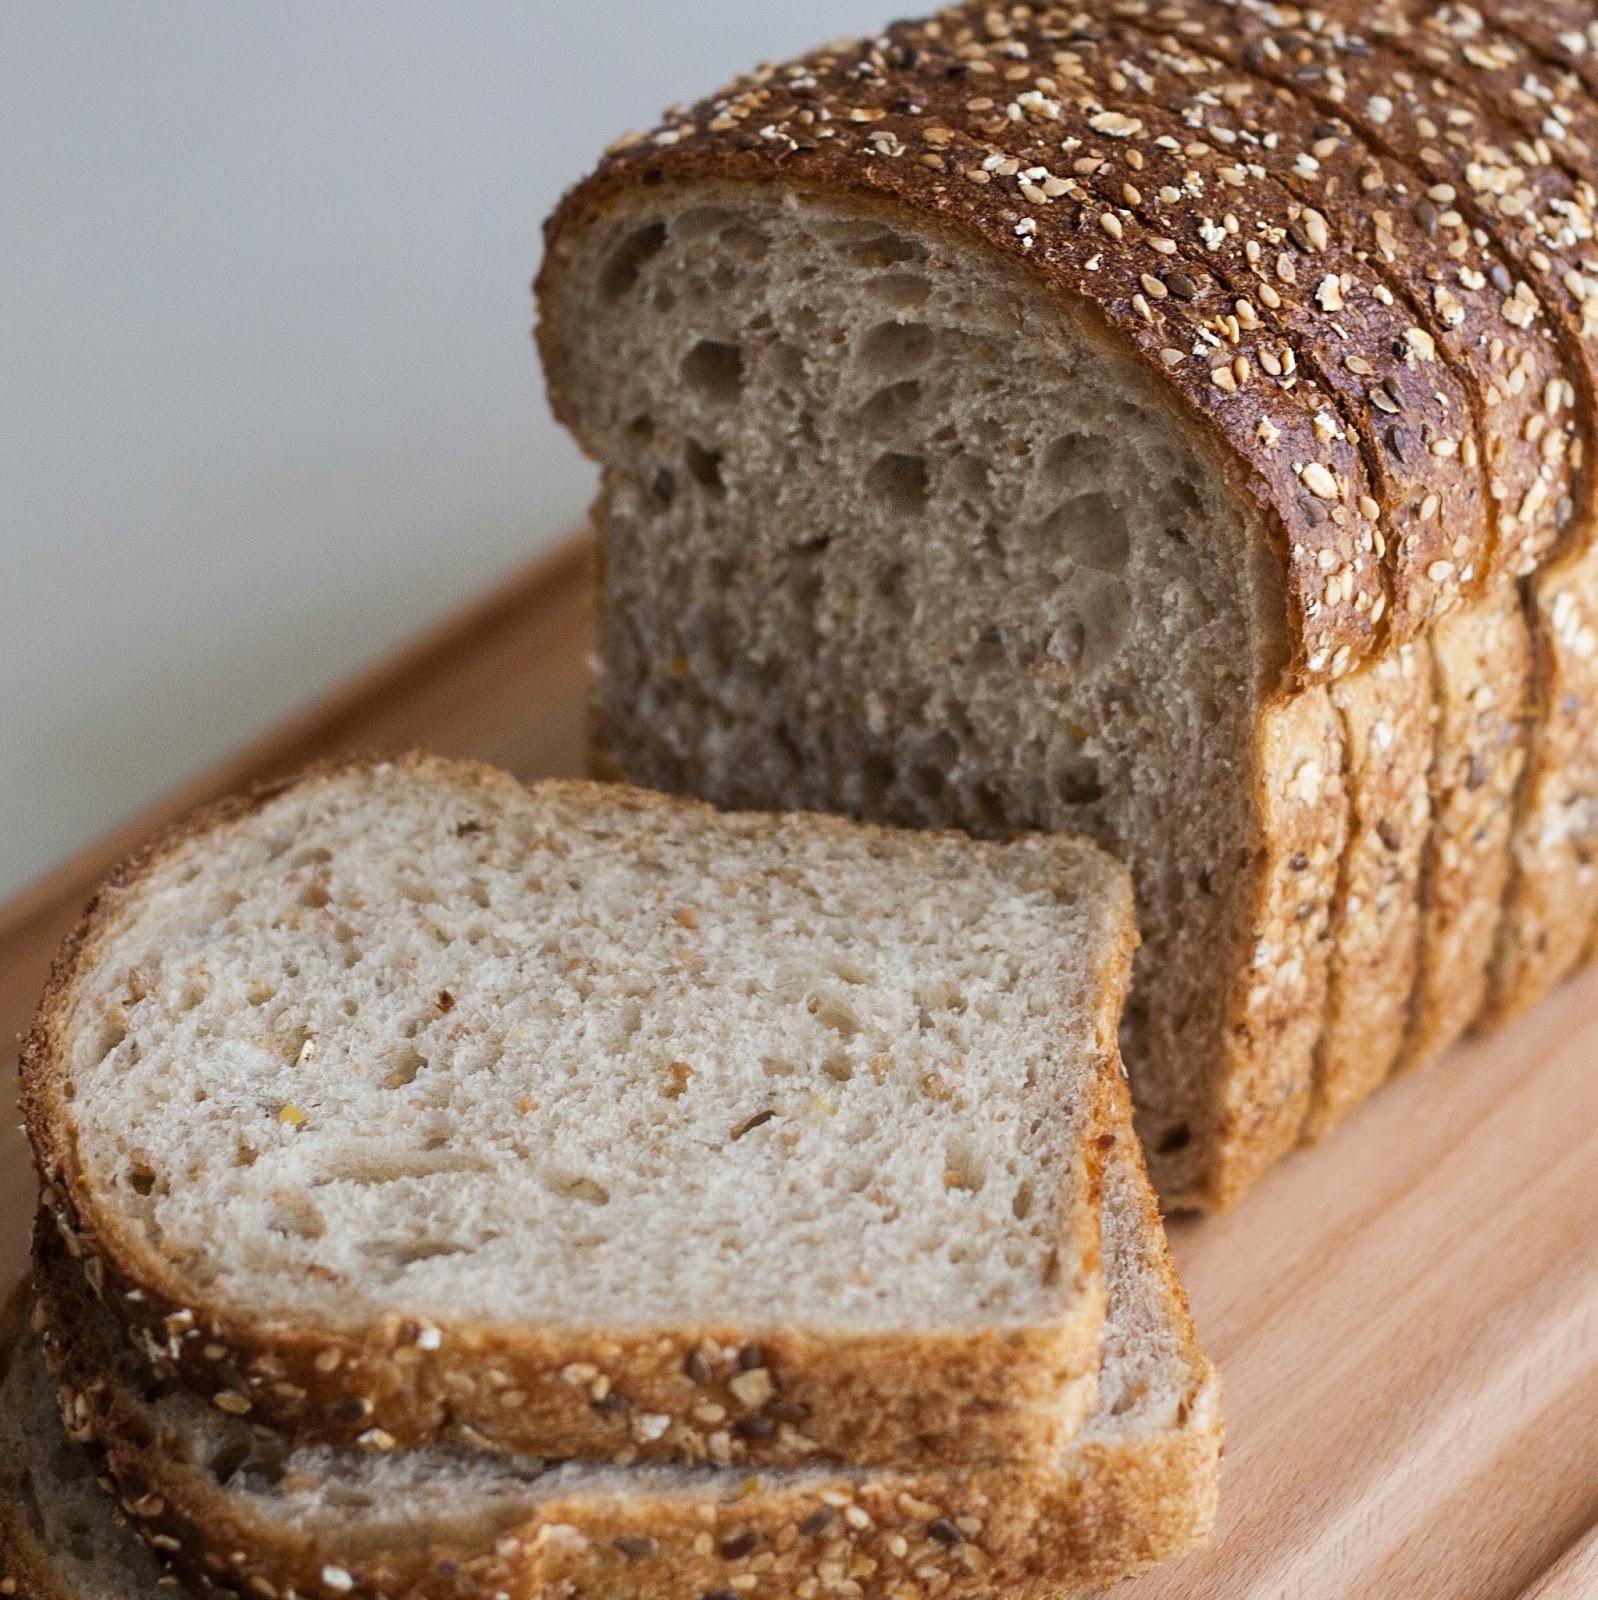 Healthy Bread Options  7 Healthy Alternatives to Replace your Everyday Food